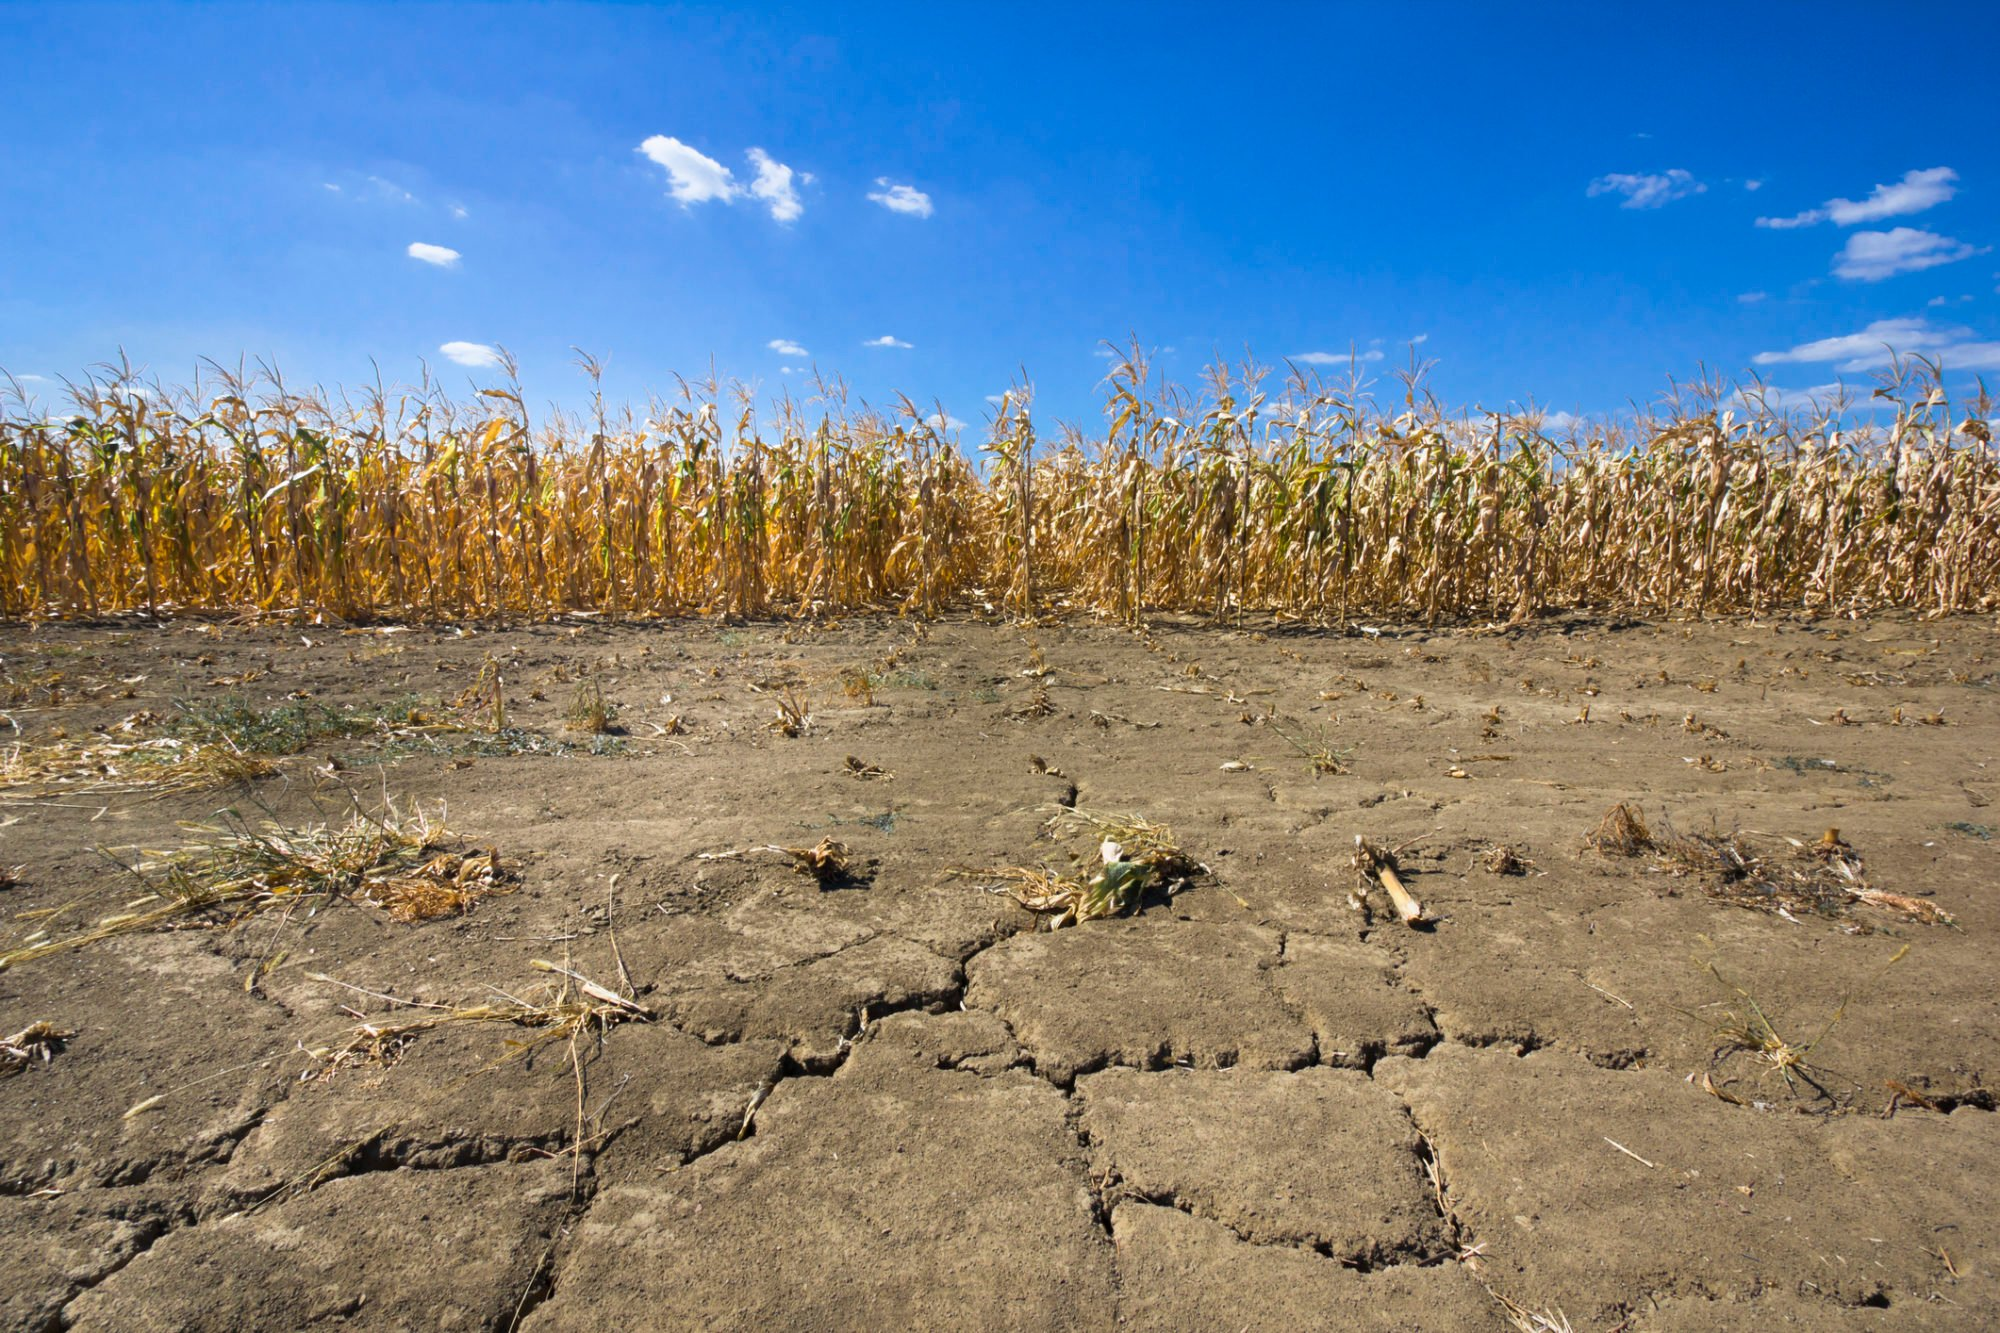 FITSNews – Drought Conditions Creeping Across South Carolina